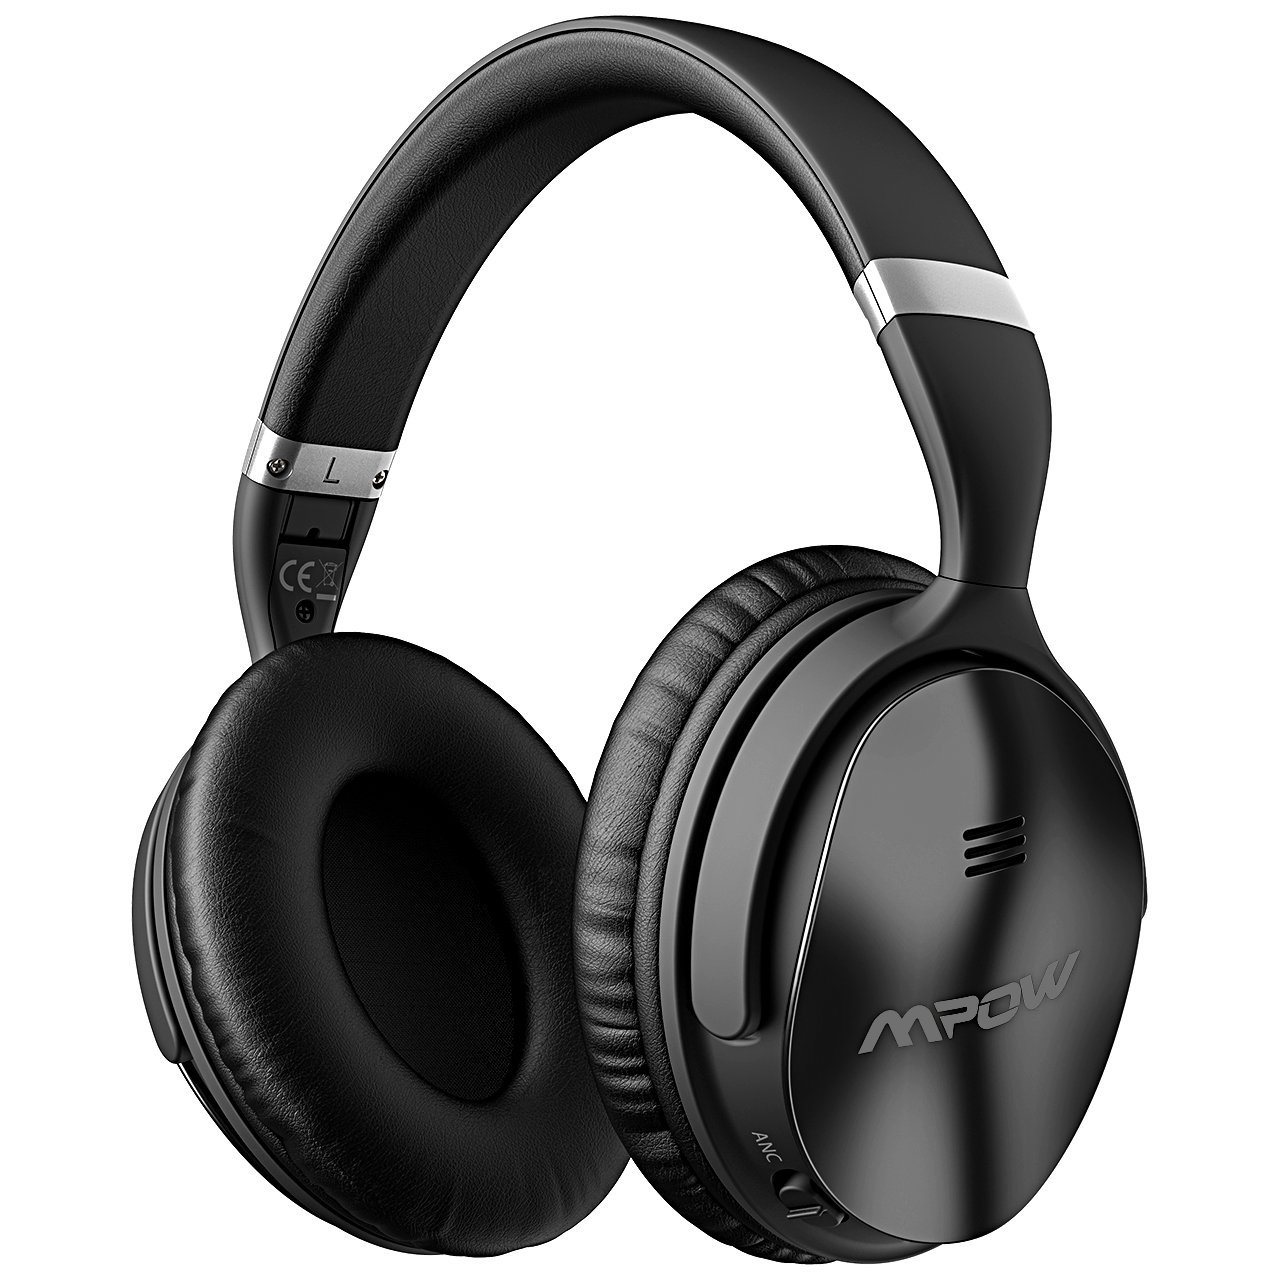 Mpow H5 Active Noise Cancelling Headphones, ANC Over Ear Wireless Bluetooth Headphones w/Mic, Dual 40 mm Drivers, Superior Deep Bass for PC/Cell Phone (25-30Hrs Playtime, CVC6.0 Noise-Cancelling Mic) by Mpow